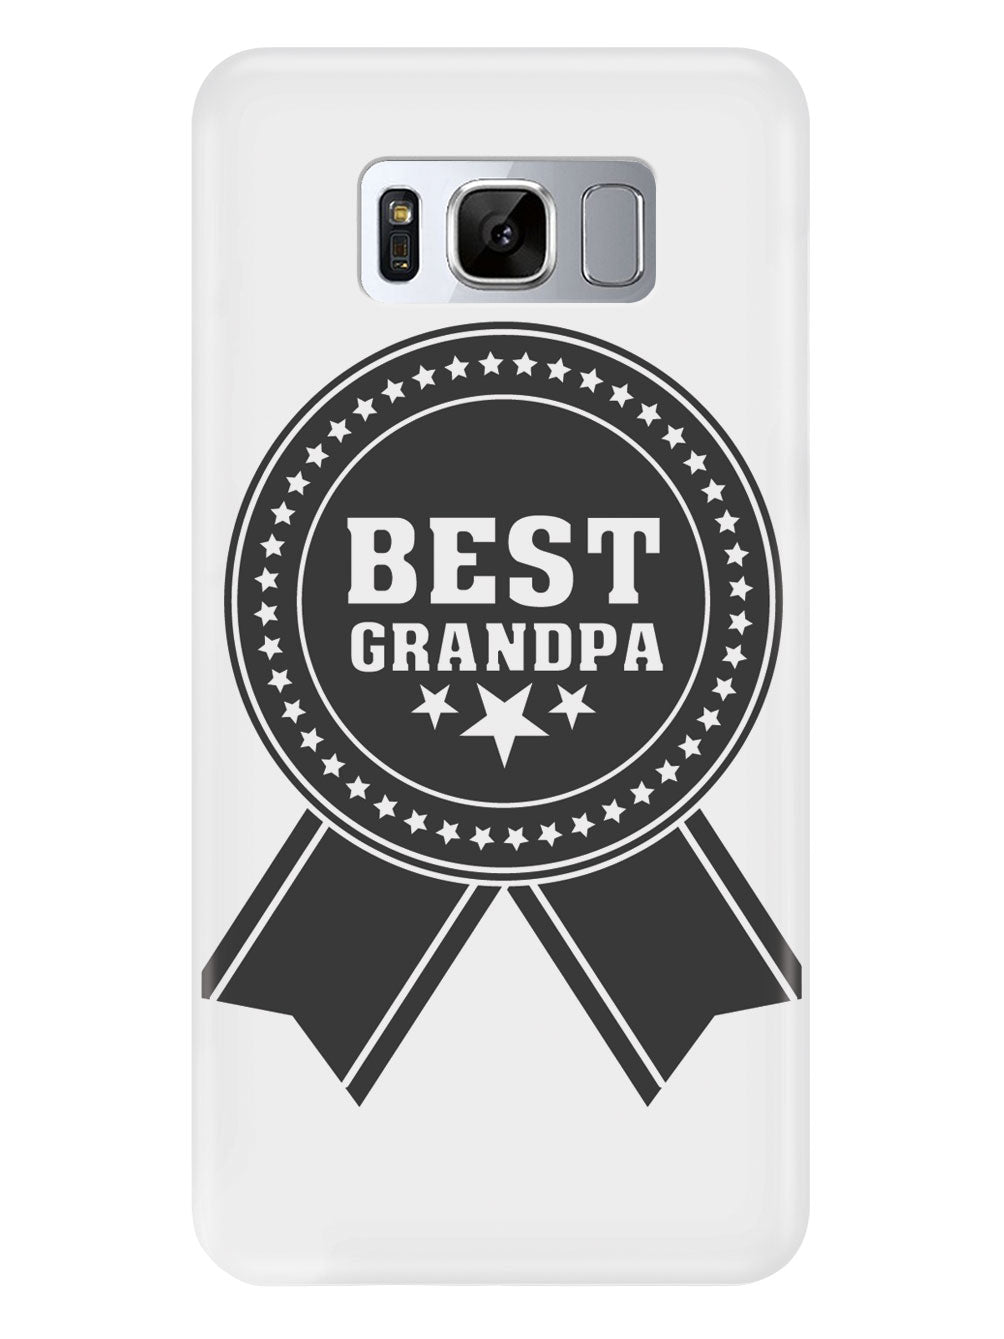 Best Grandpa - Ribbon - White Case